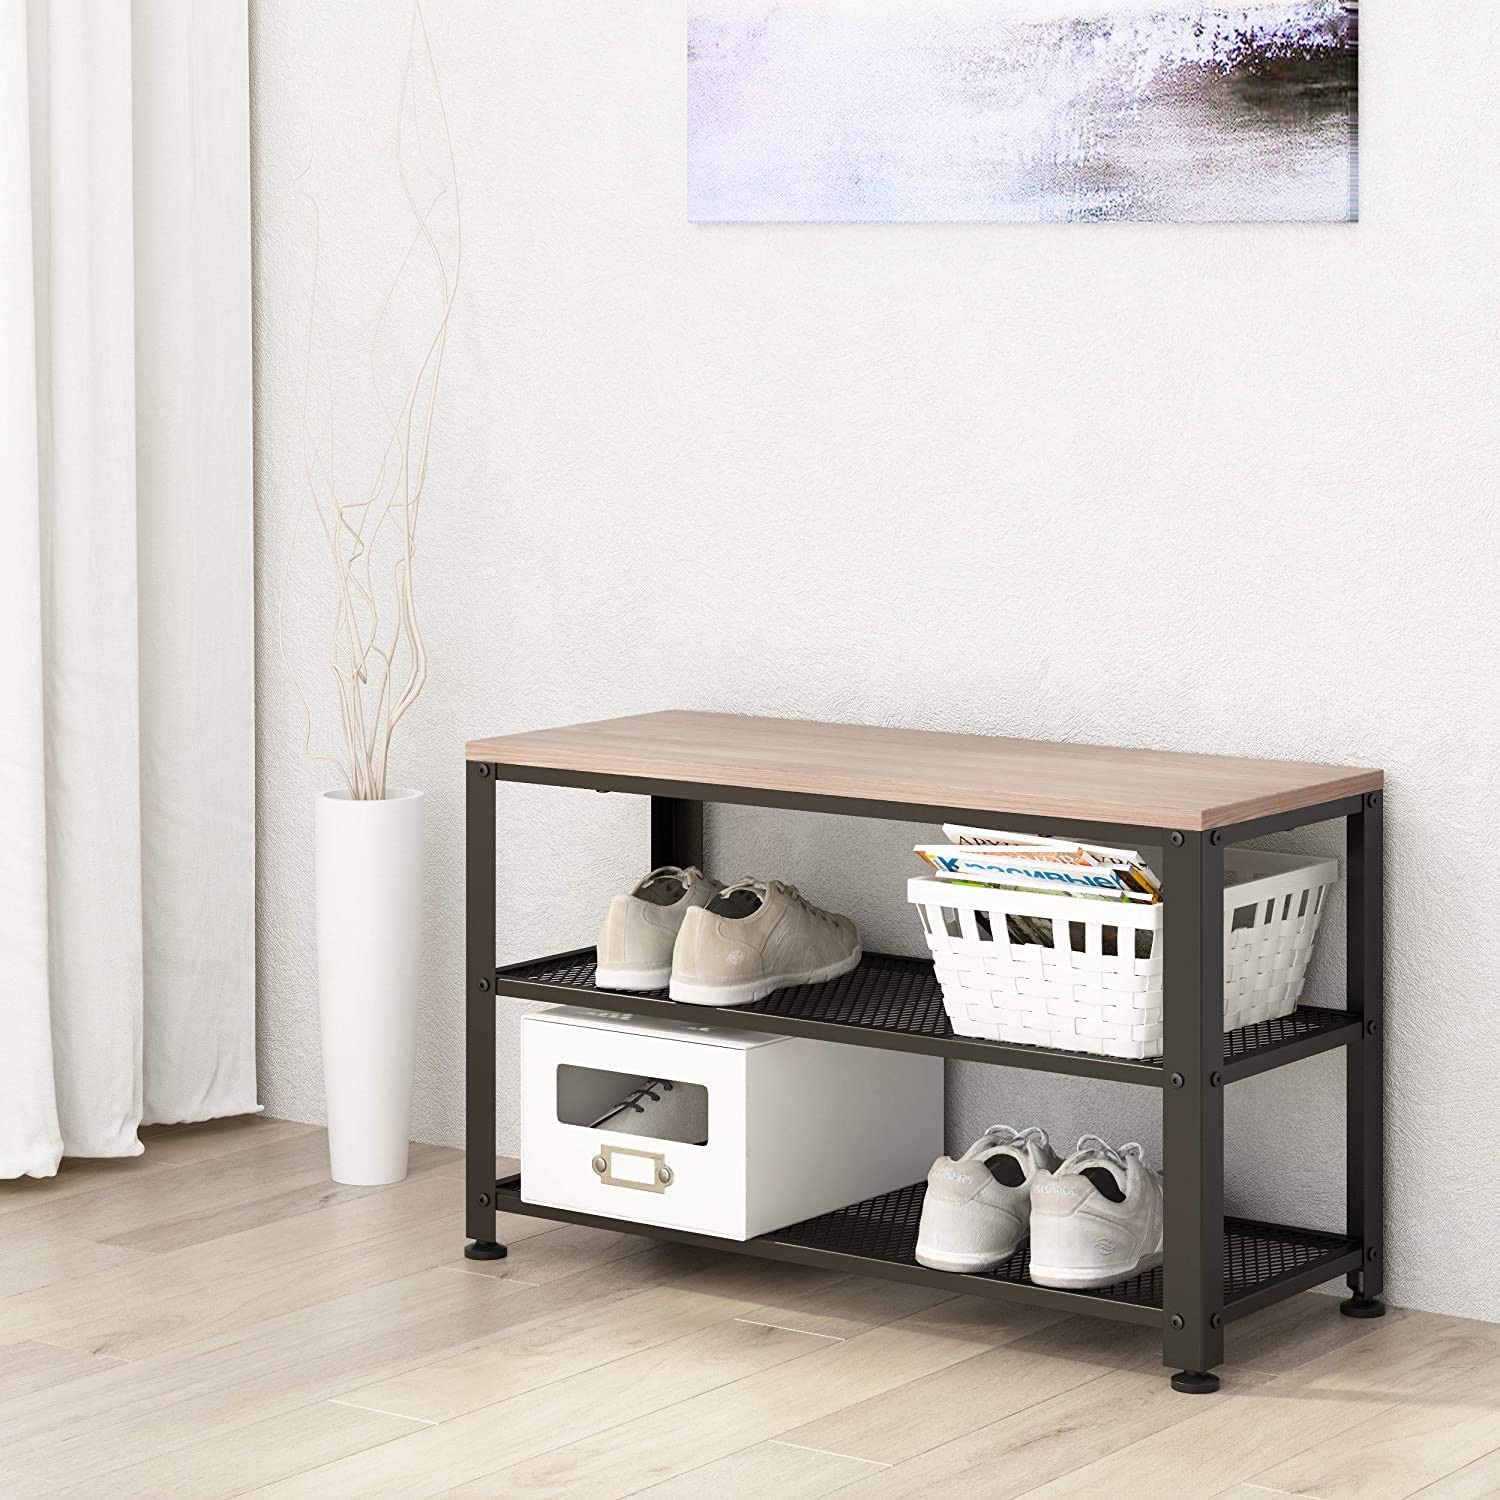 Holds up to 220 lbs 3-Tier Shoe Rack Bench with Mesh Shelves SIMPDIY Shoe Bench Sturdy Entryway Bench with shoe storage 73 x 30x 45cm